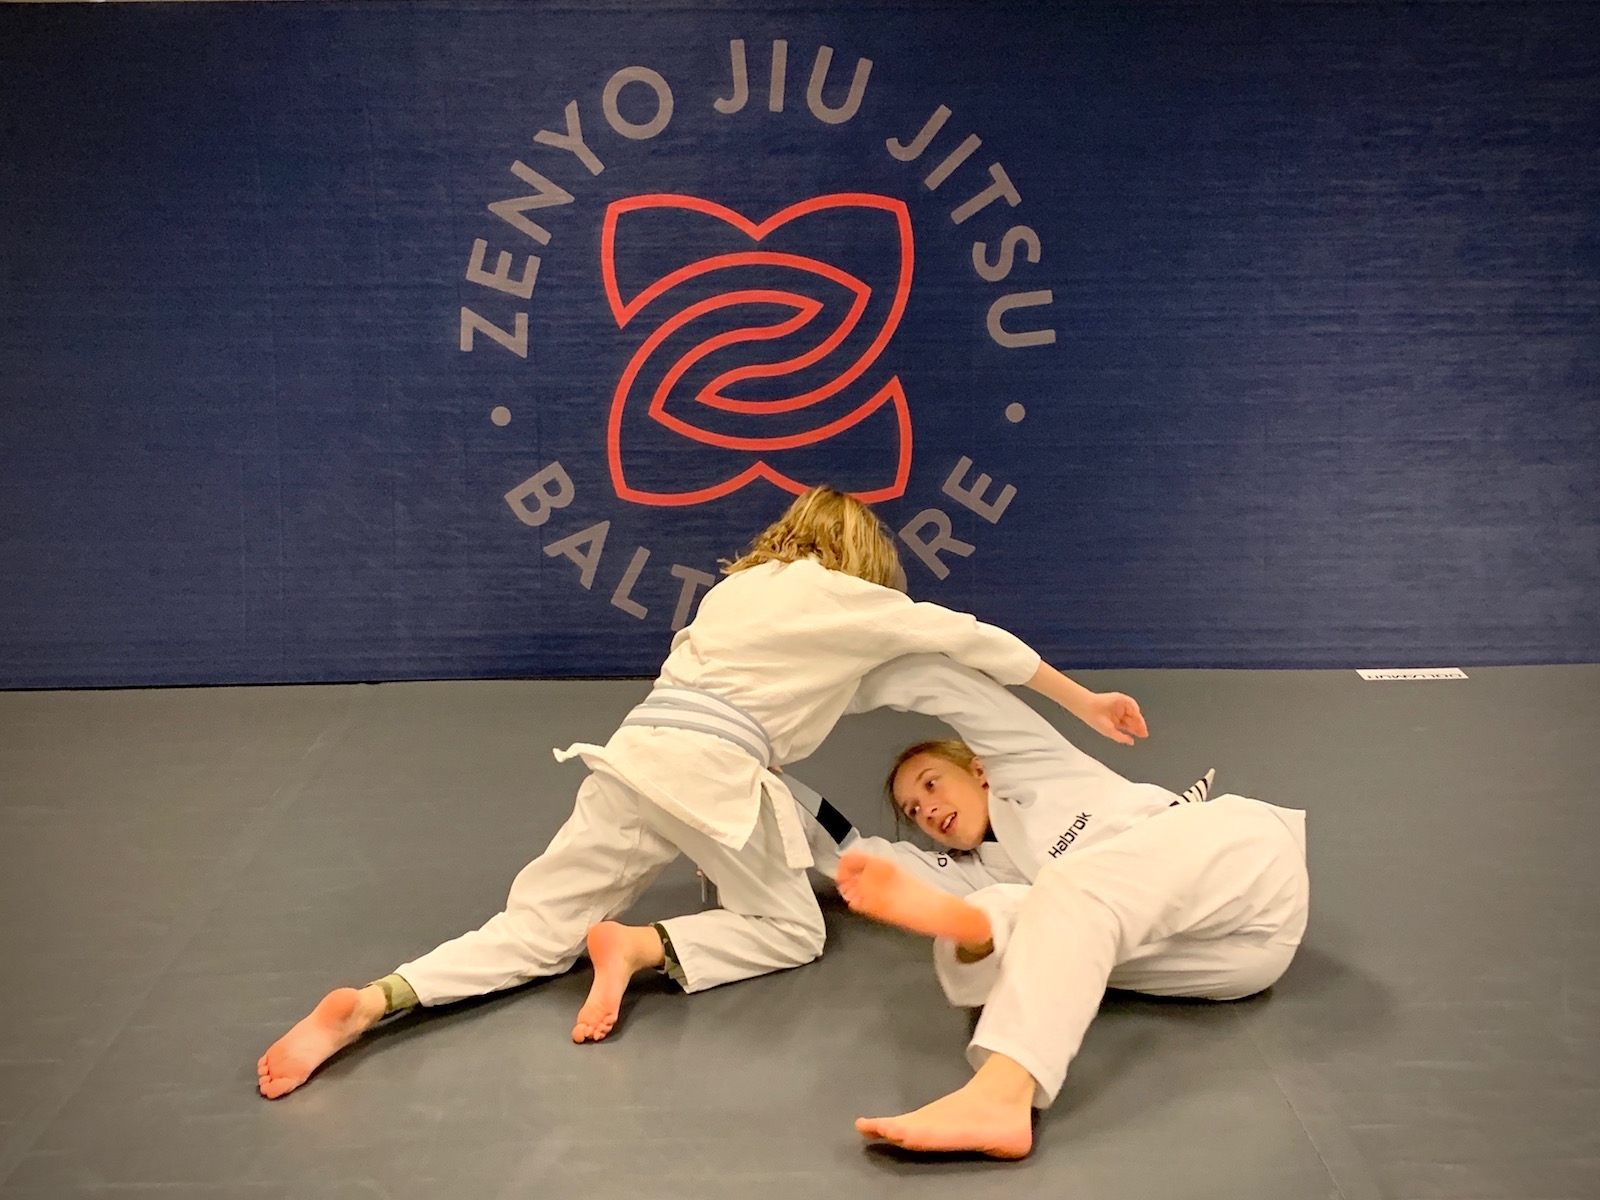 Zenyo Jiu Jitsu Training